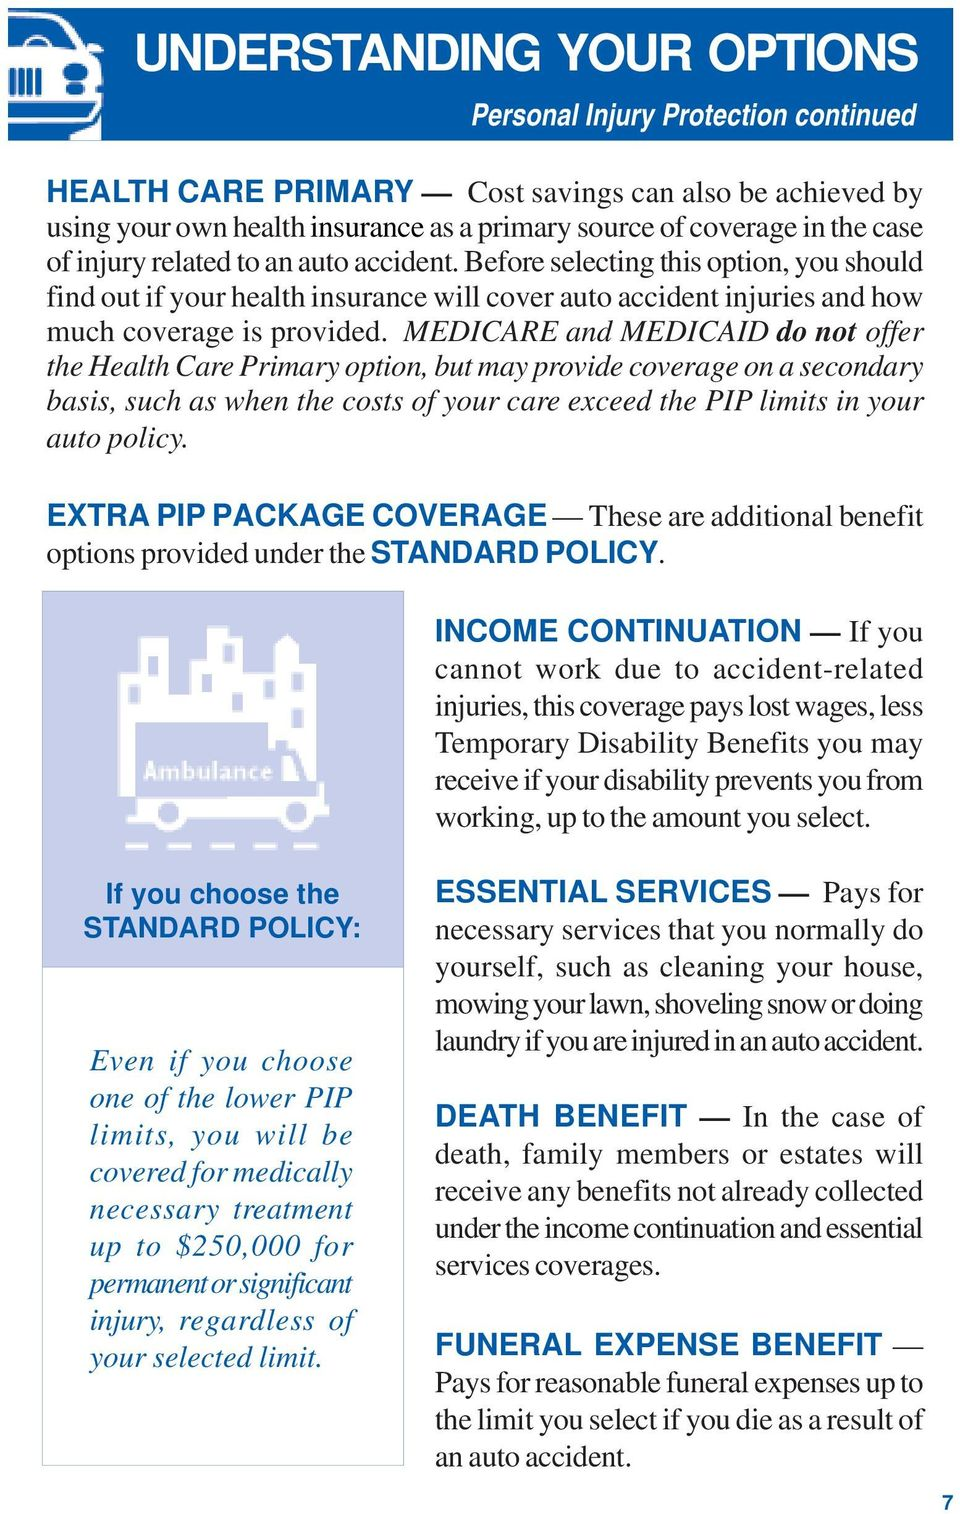 MEDICARE and MEDICAID do not offer the Health Care Primary option, but may provide coverage on a secondary basis, such as when the costs of your care exceed the PIP limits in your auto policy.